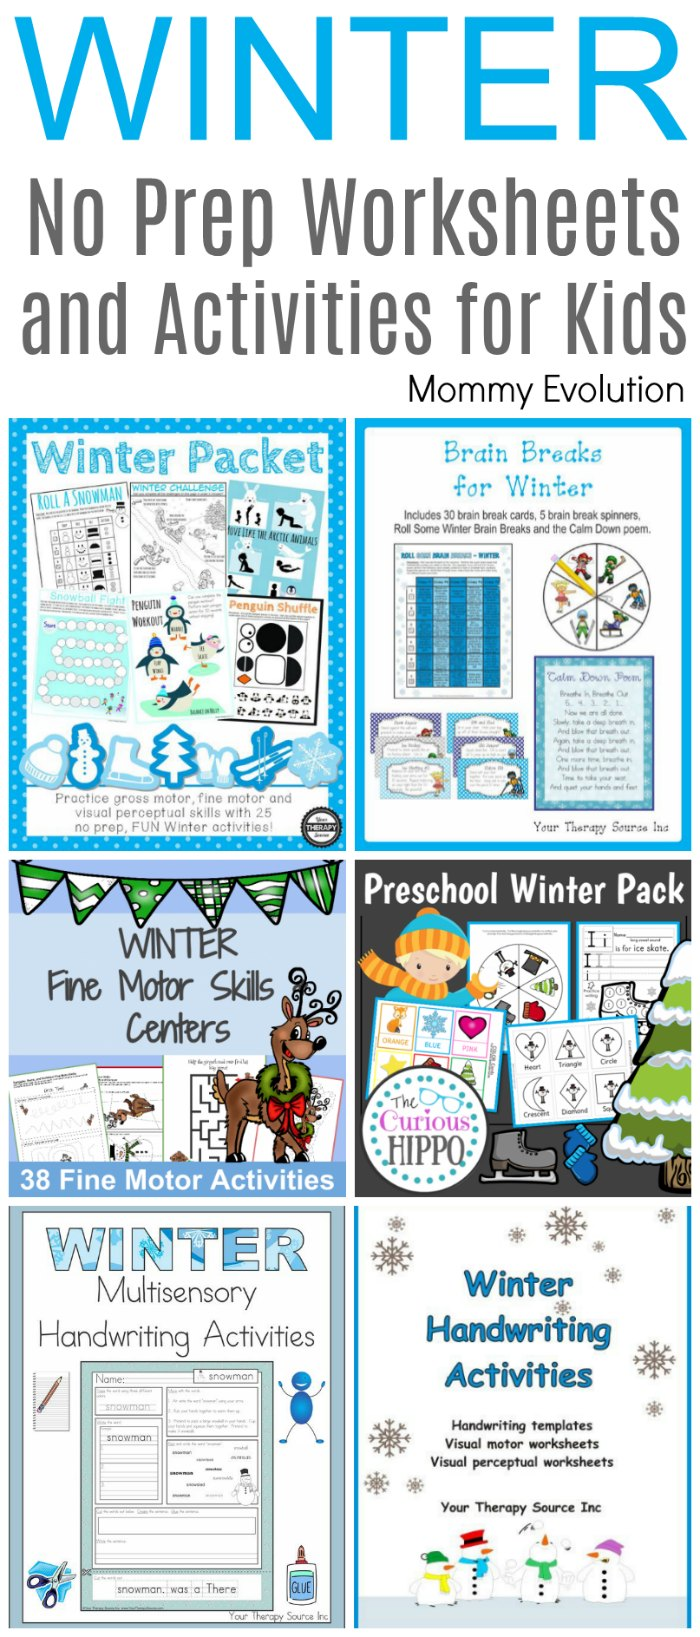 No Prep Winter Worksheets and Activities | Mommy Evolution